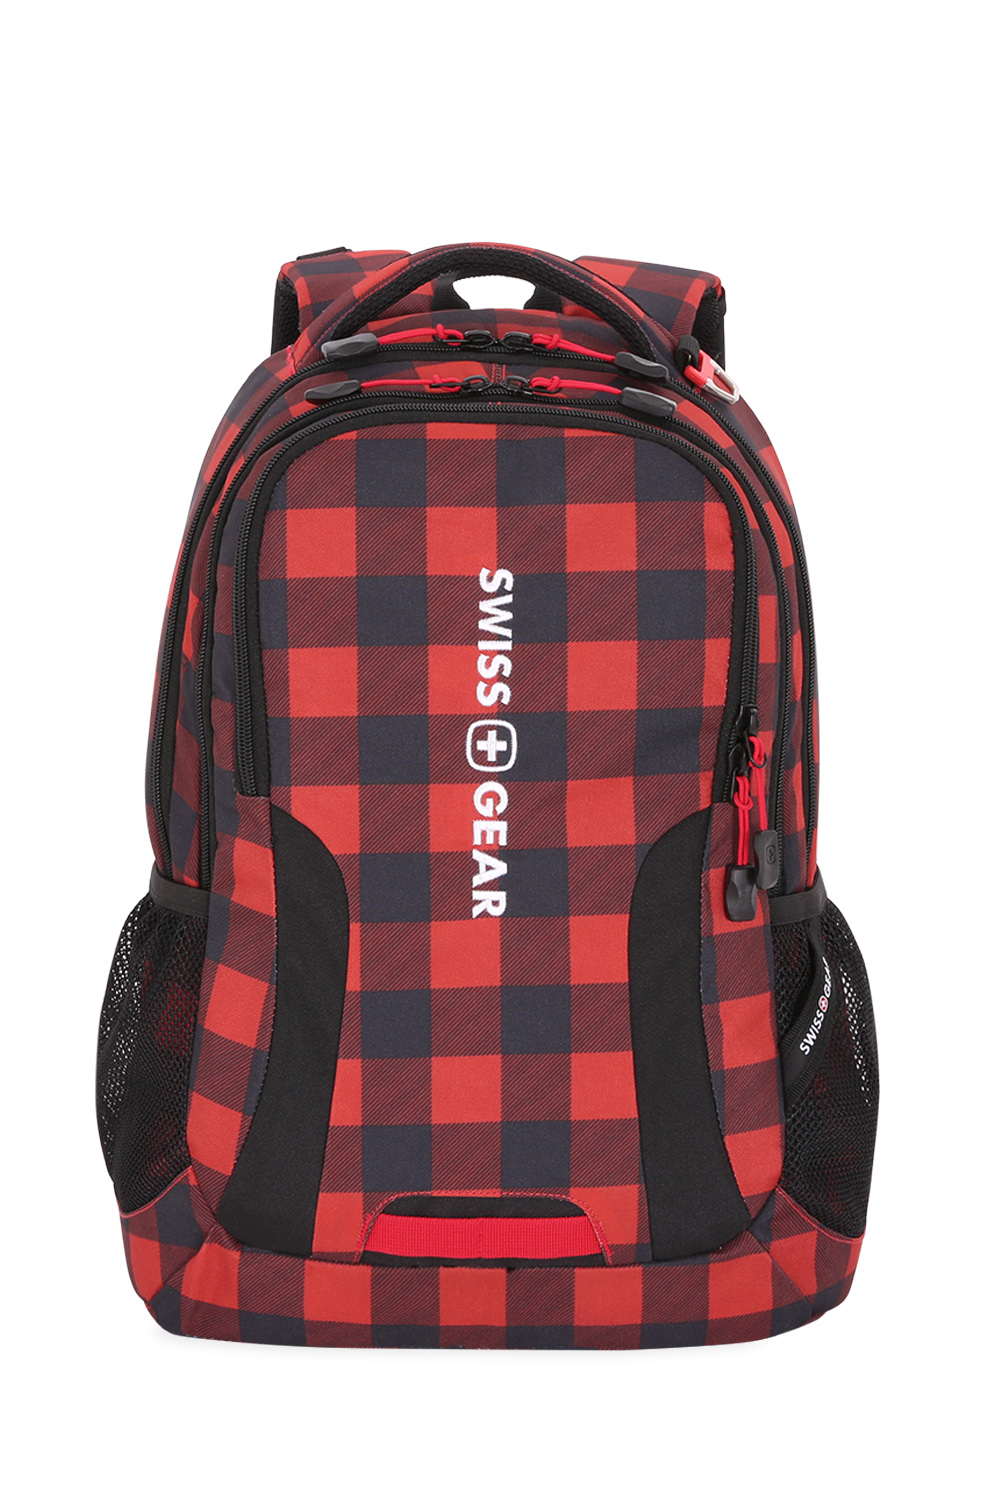 Swiss Gear Plaid Backpack